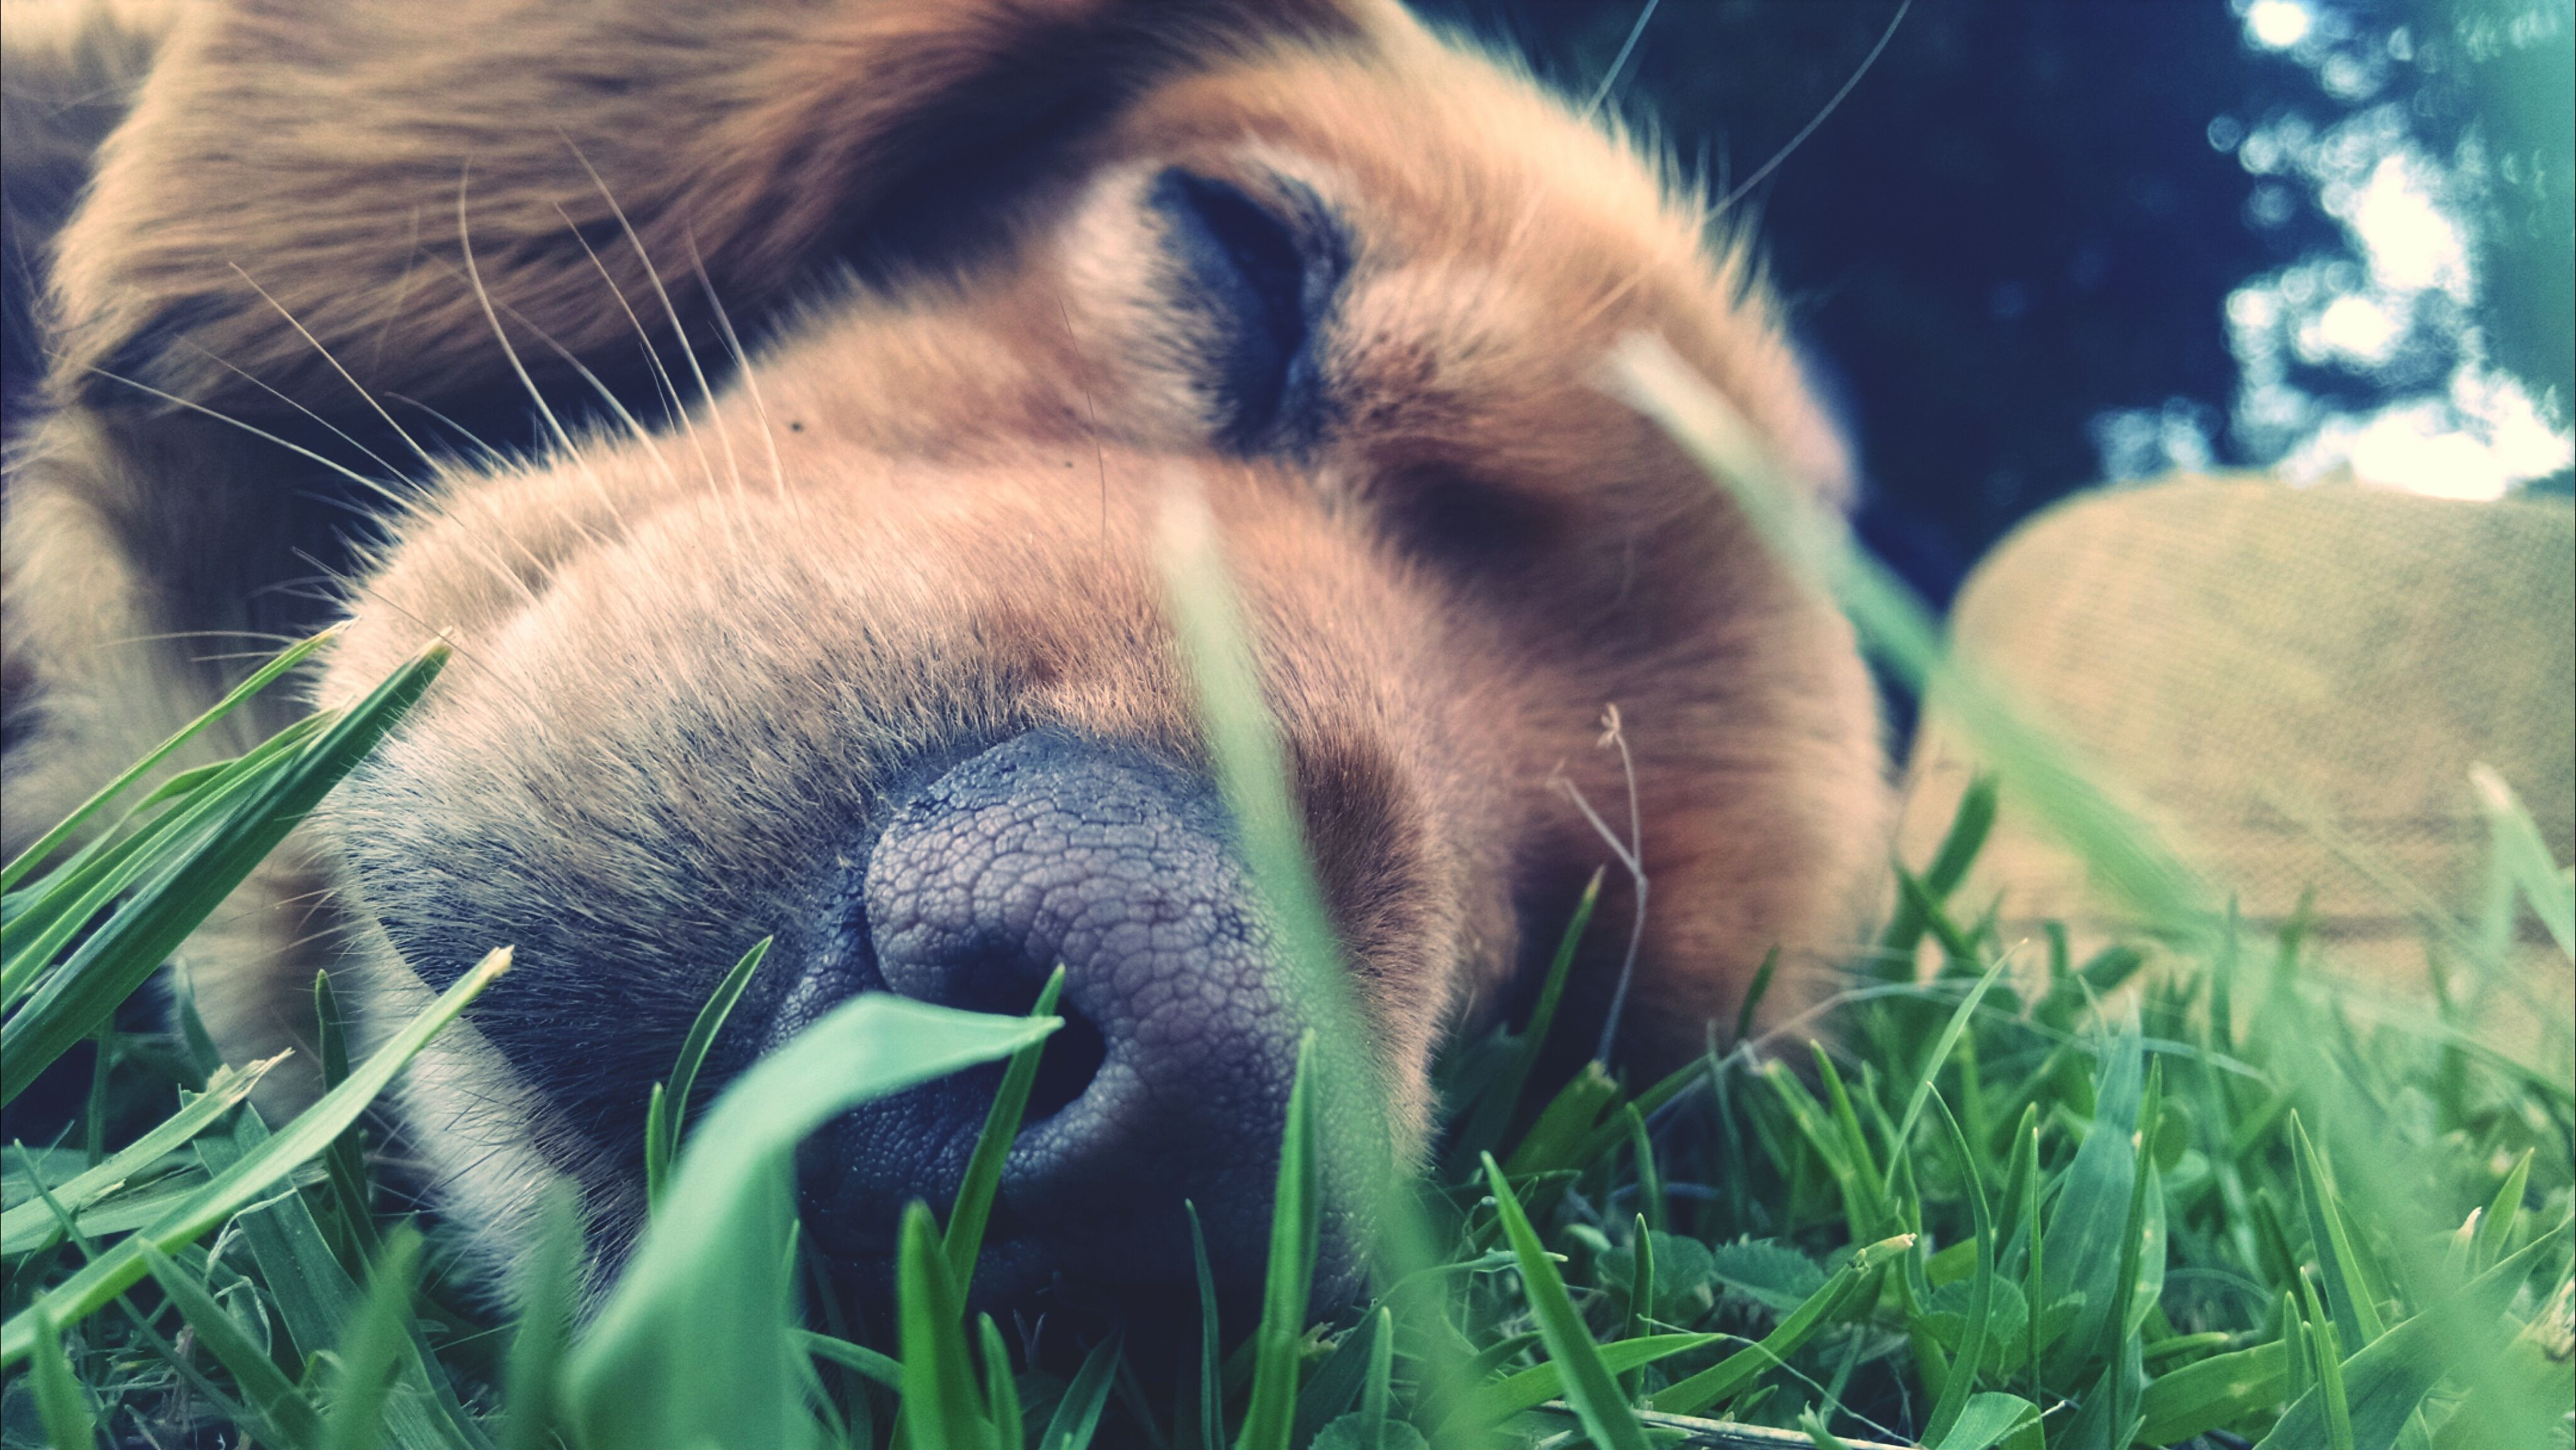 animal themes, one animal, mammal, domestic animals, close-up, pets, grass, animal head, focus on foreground, field, relaxation, animal body part, no people, nature, day, resting, outdoors, selective focus, part of, animal hair